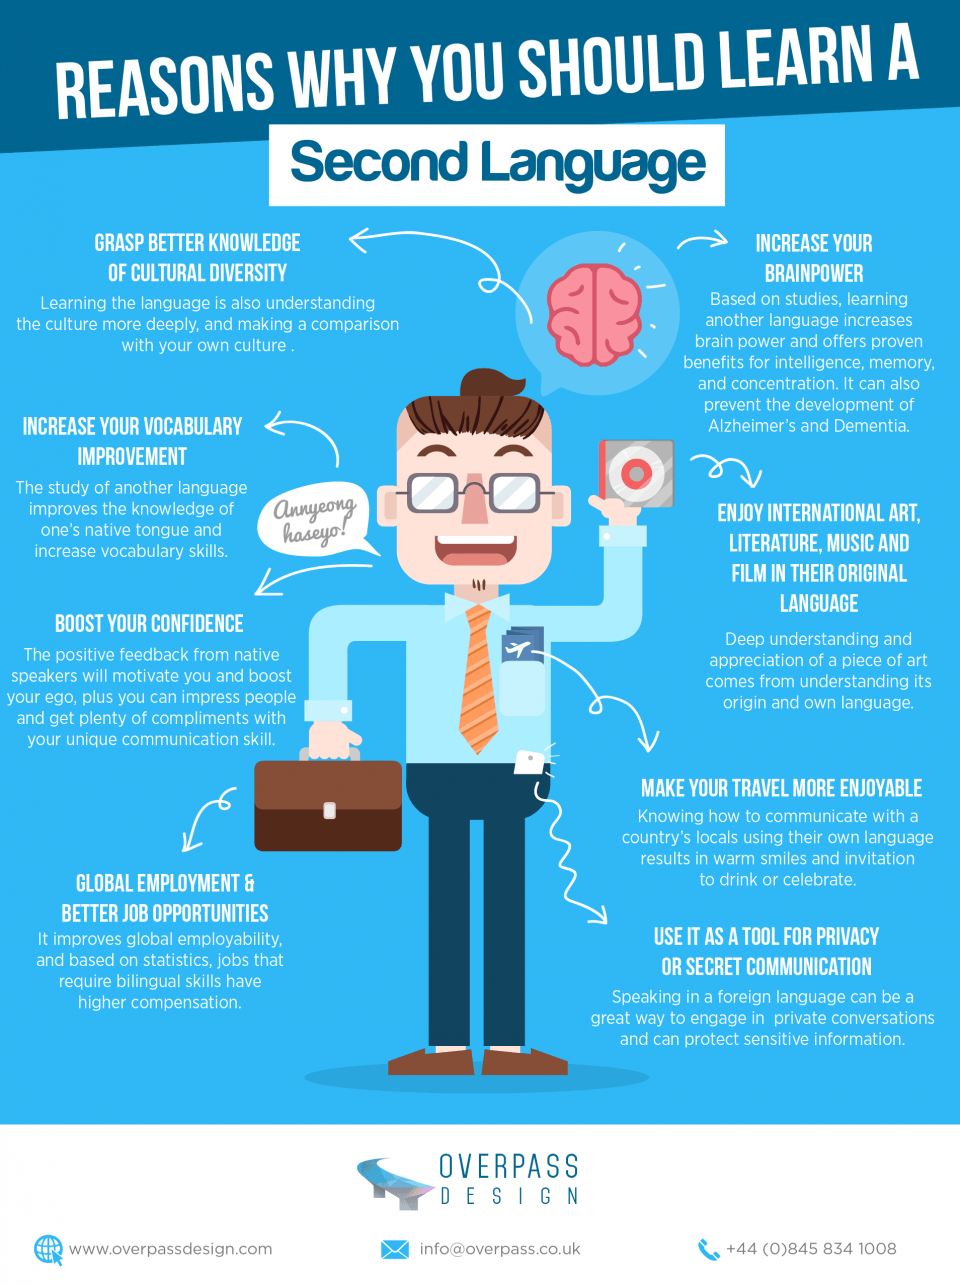 Why You Should Learn a Second Language Infographic